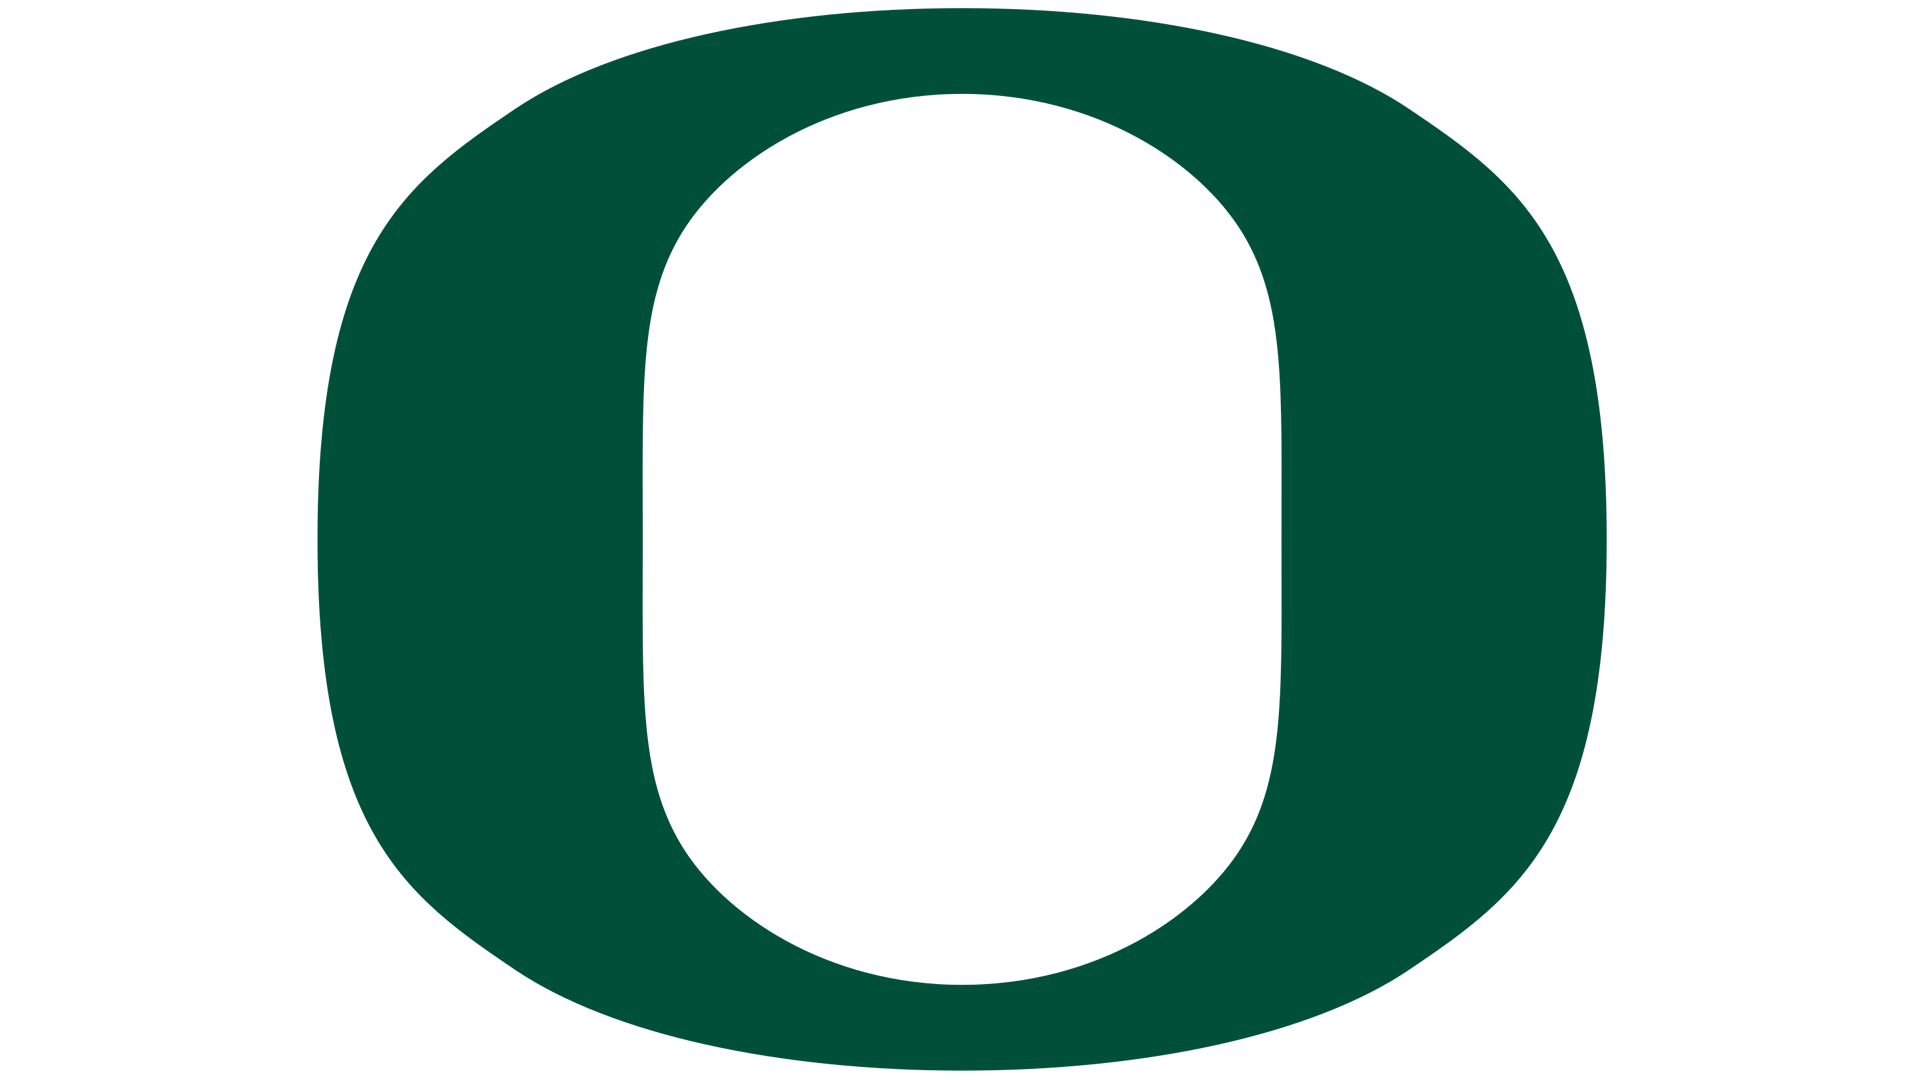 Meaning Oregon Ducks logo and symbol.